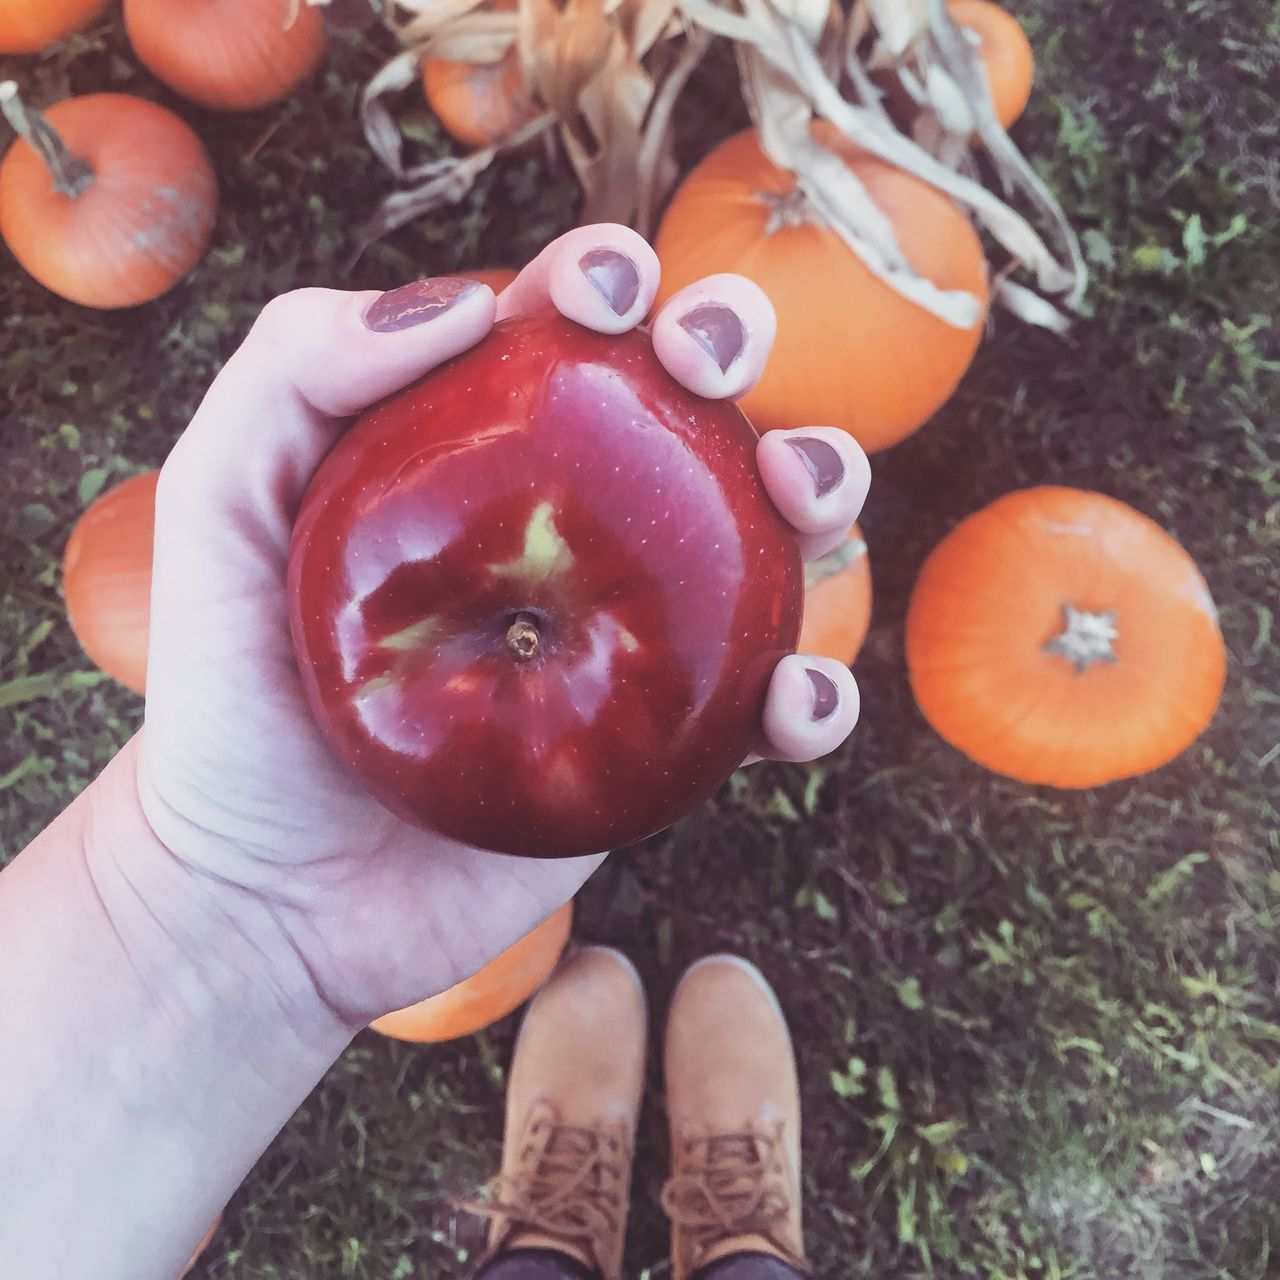 Adult Autumn Close-up Day Fall Food Food And Drink Freshness Growth Healthy Eating Holding Human Body Part Human Hand Low Section Nature One Person Outdoors People Pumpkin Pumpkin Patch Real People